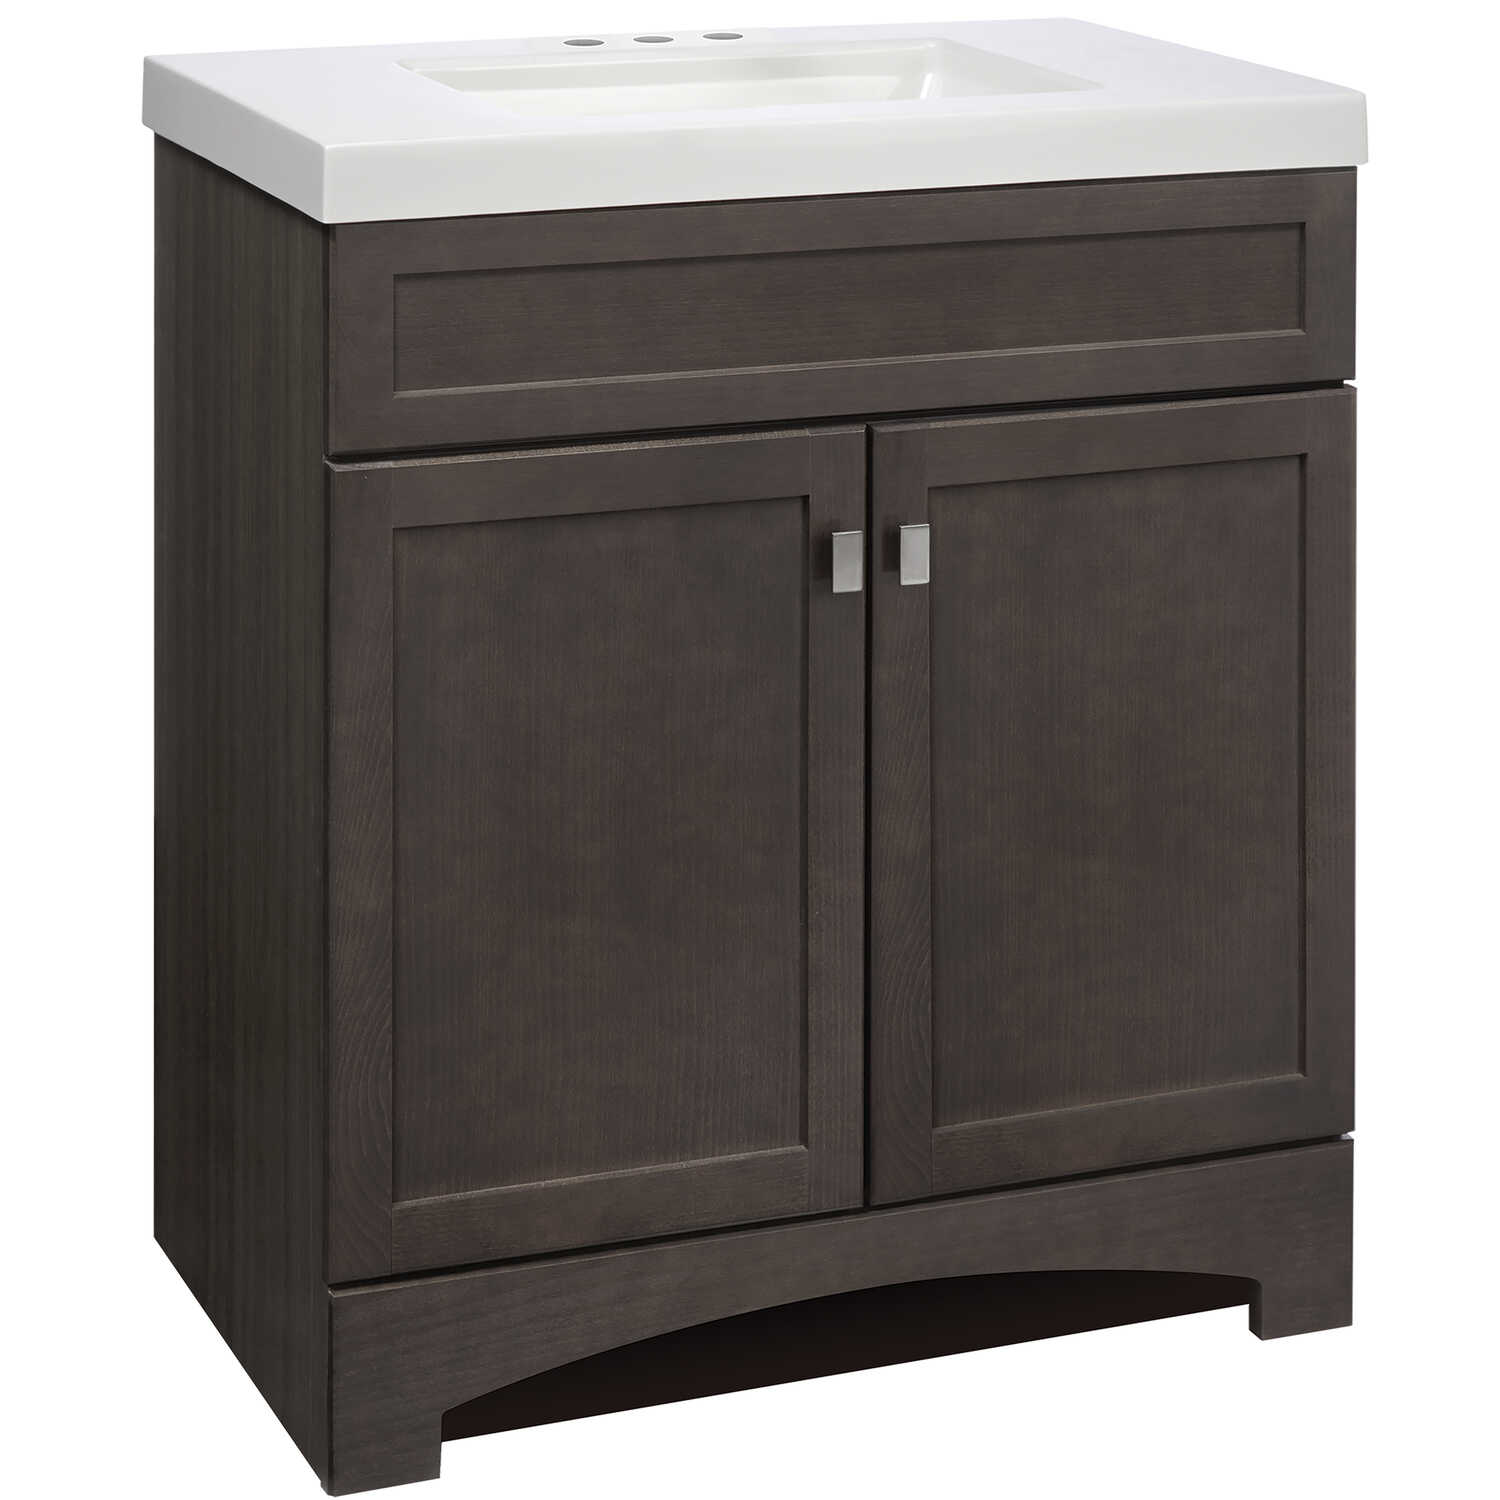 Continental Cabinets  Davison  Single  Bright  Grey  Vanity Combo  30 in. W x 18 in. D x 33-1/2 in.